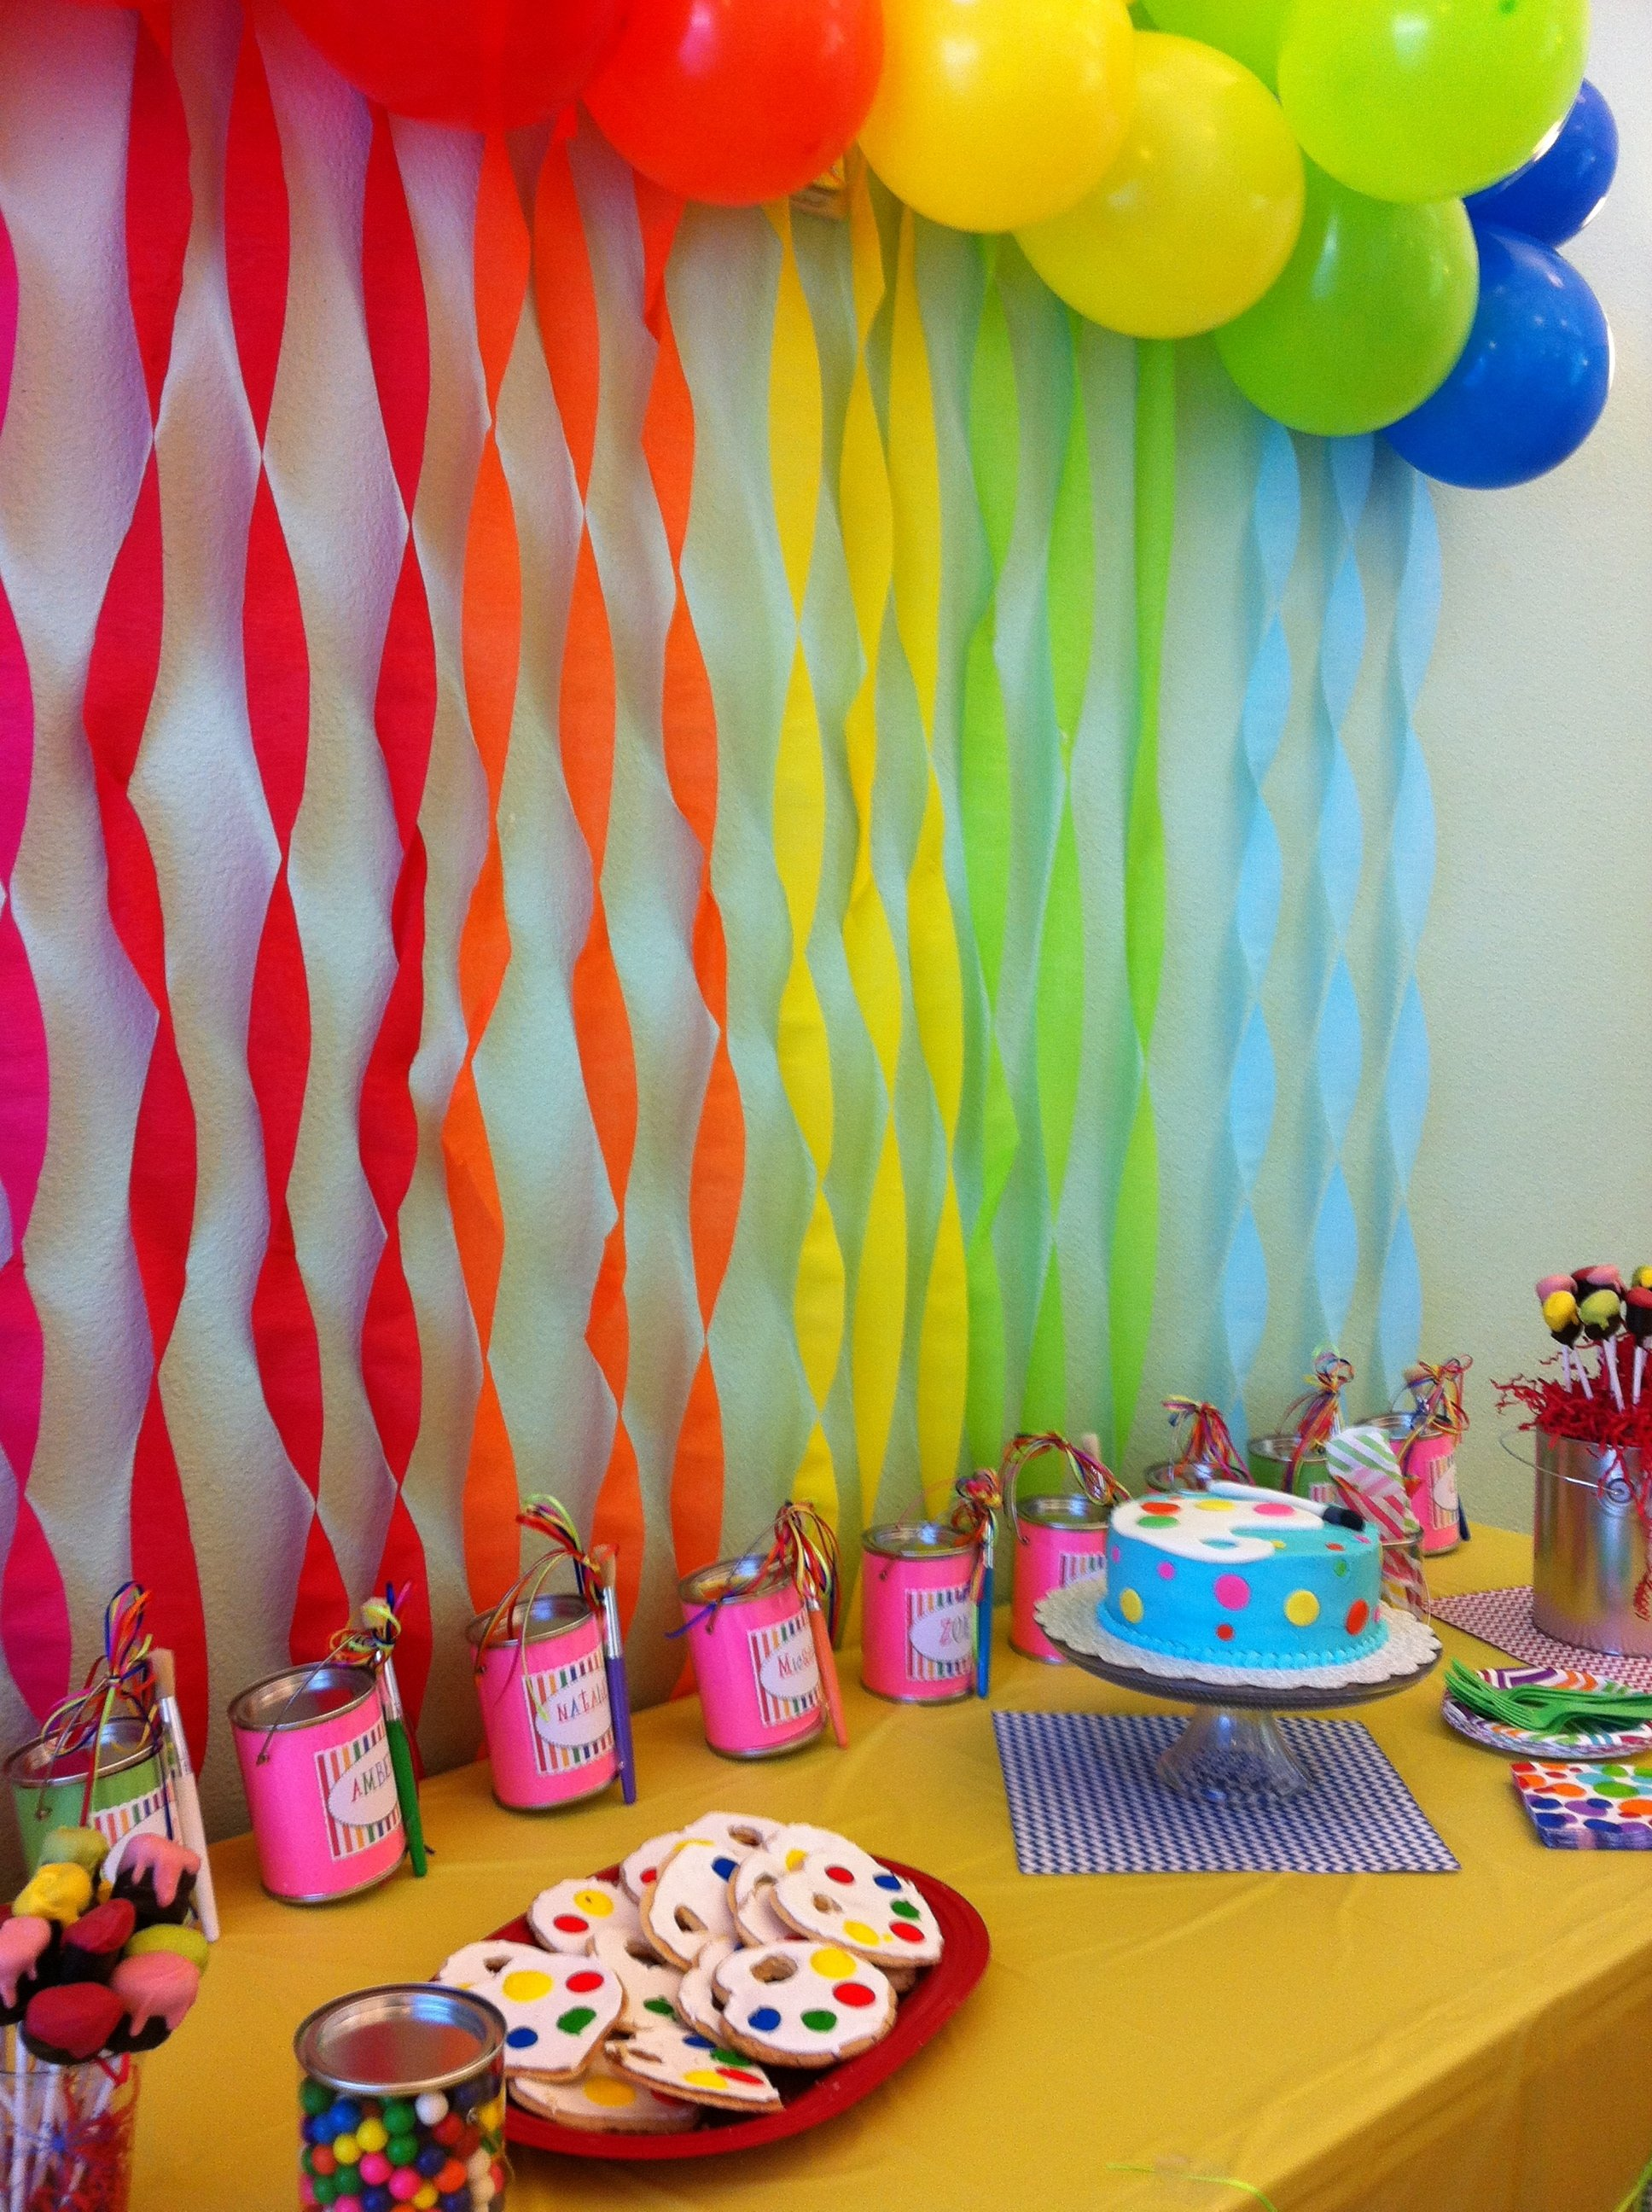 10 Unique Birthday Party Ideas For 11 Year Old Girls 8 year old girl birthday art party art party pinterest art 65 2020